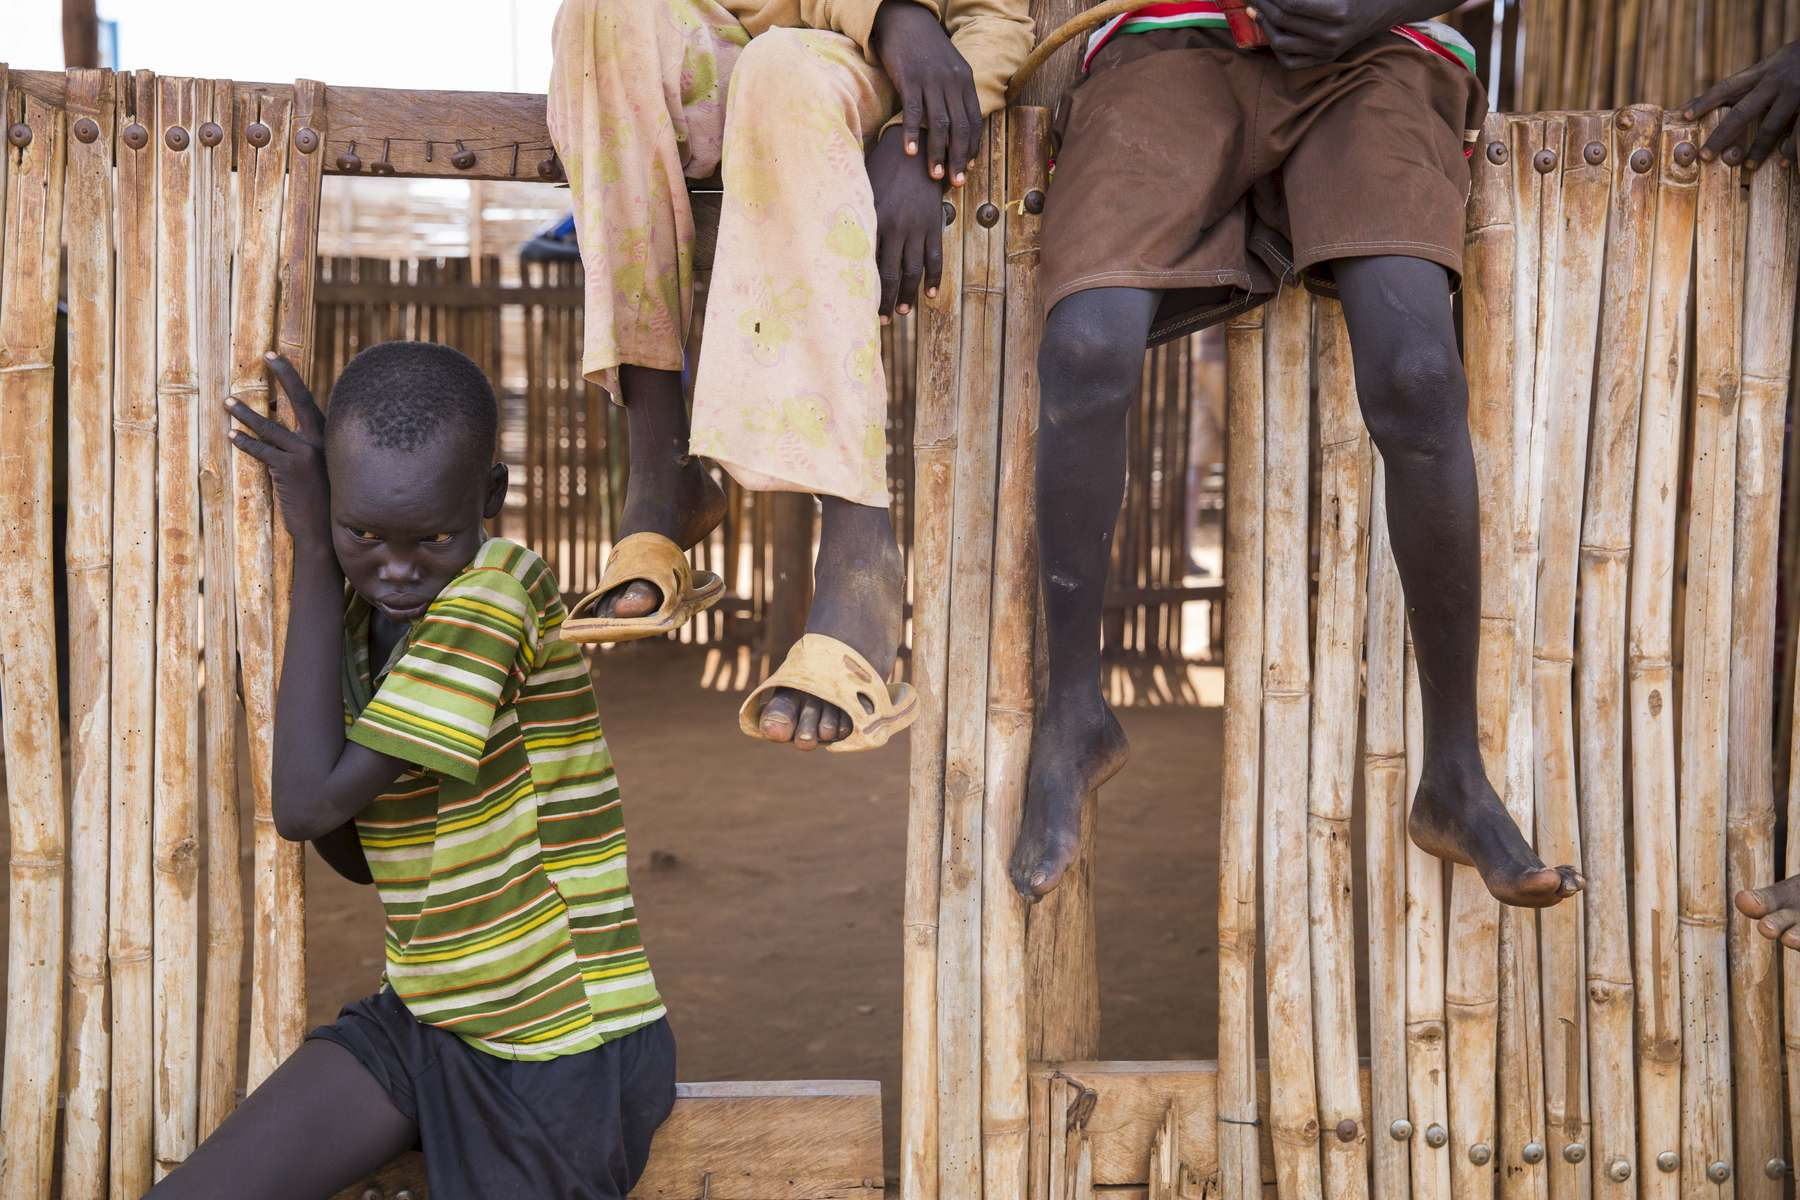 Young boys play in the Protection of Civilians 3 camp outside the UN House United Nations Mission in South Sudan compound on Saturday, 17 June, 2017 in South Sudan.